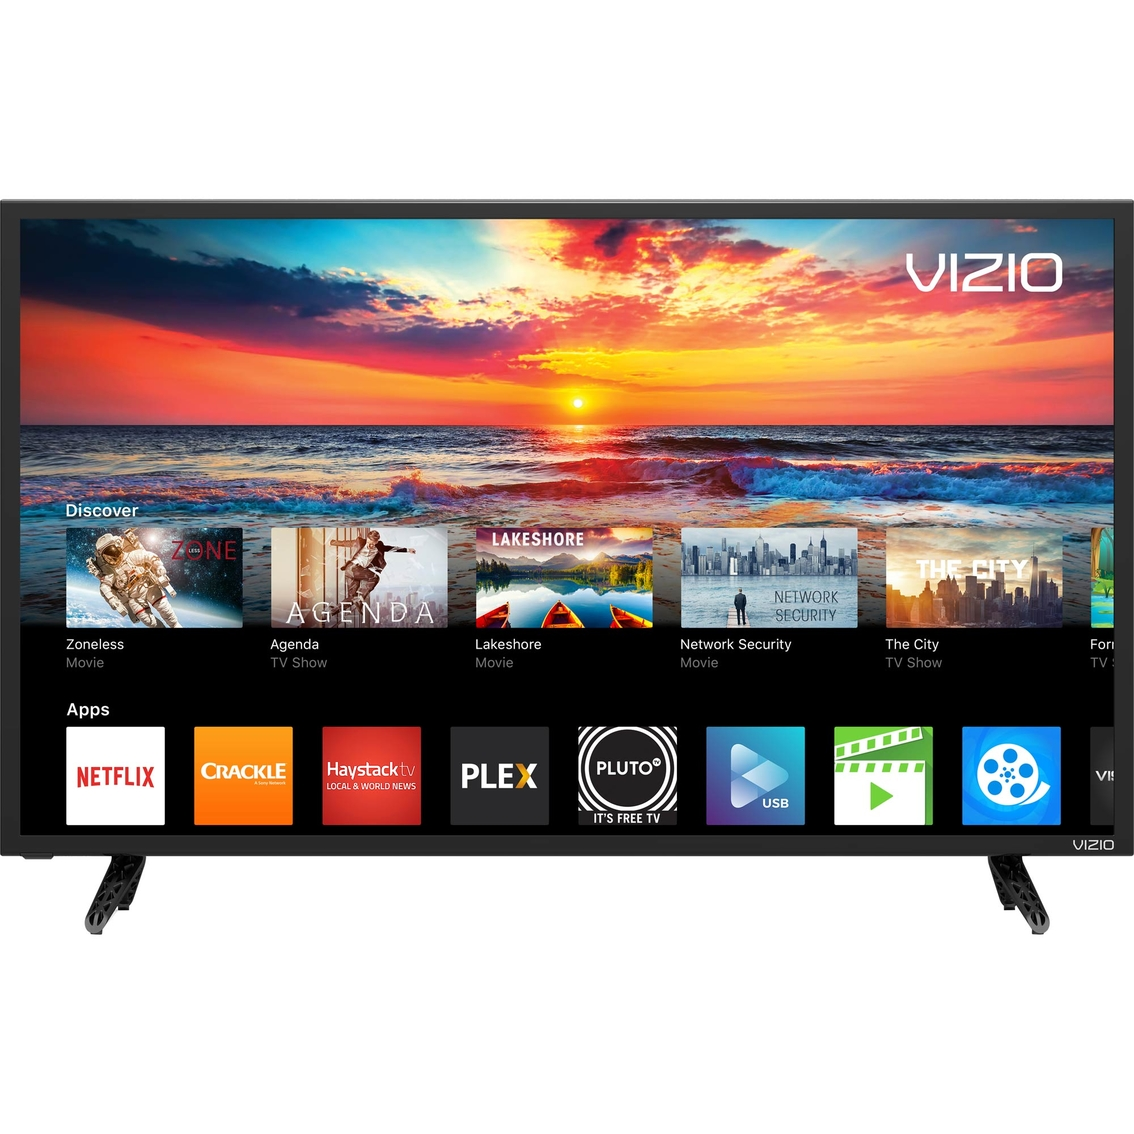 Now Tv F1 Pass Vizio 50 In 1080p Led 120hz Smart Tv D50f F1 Tvs